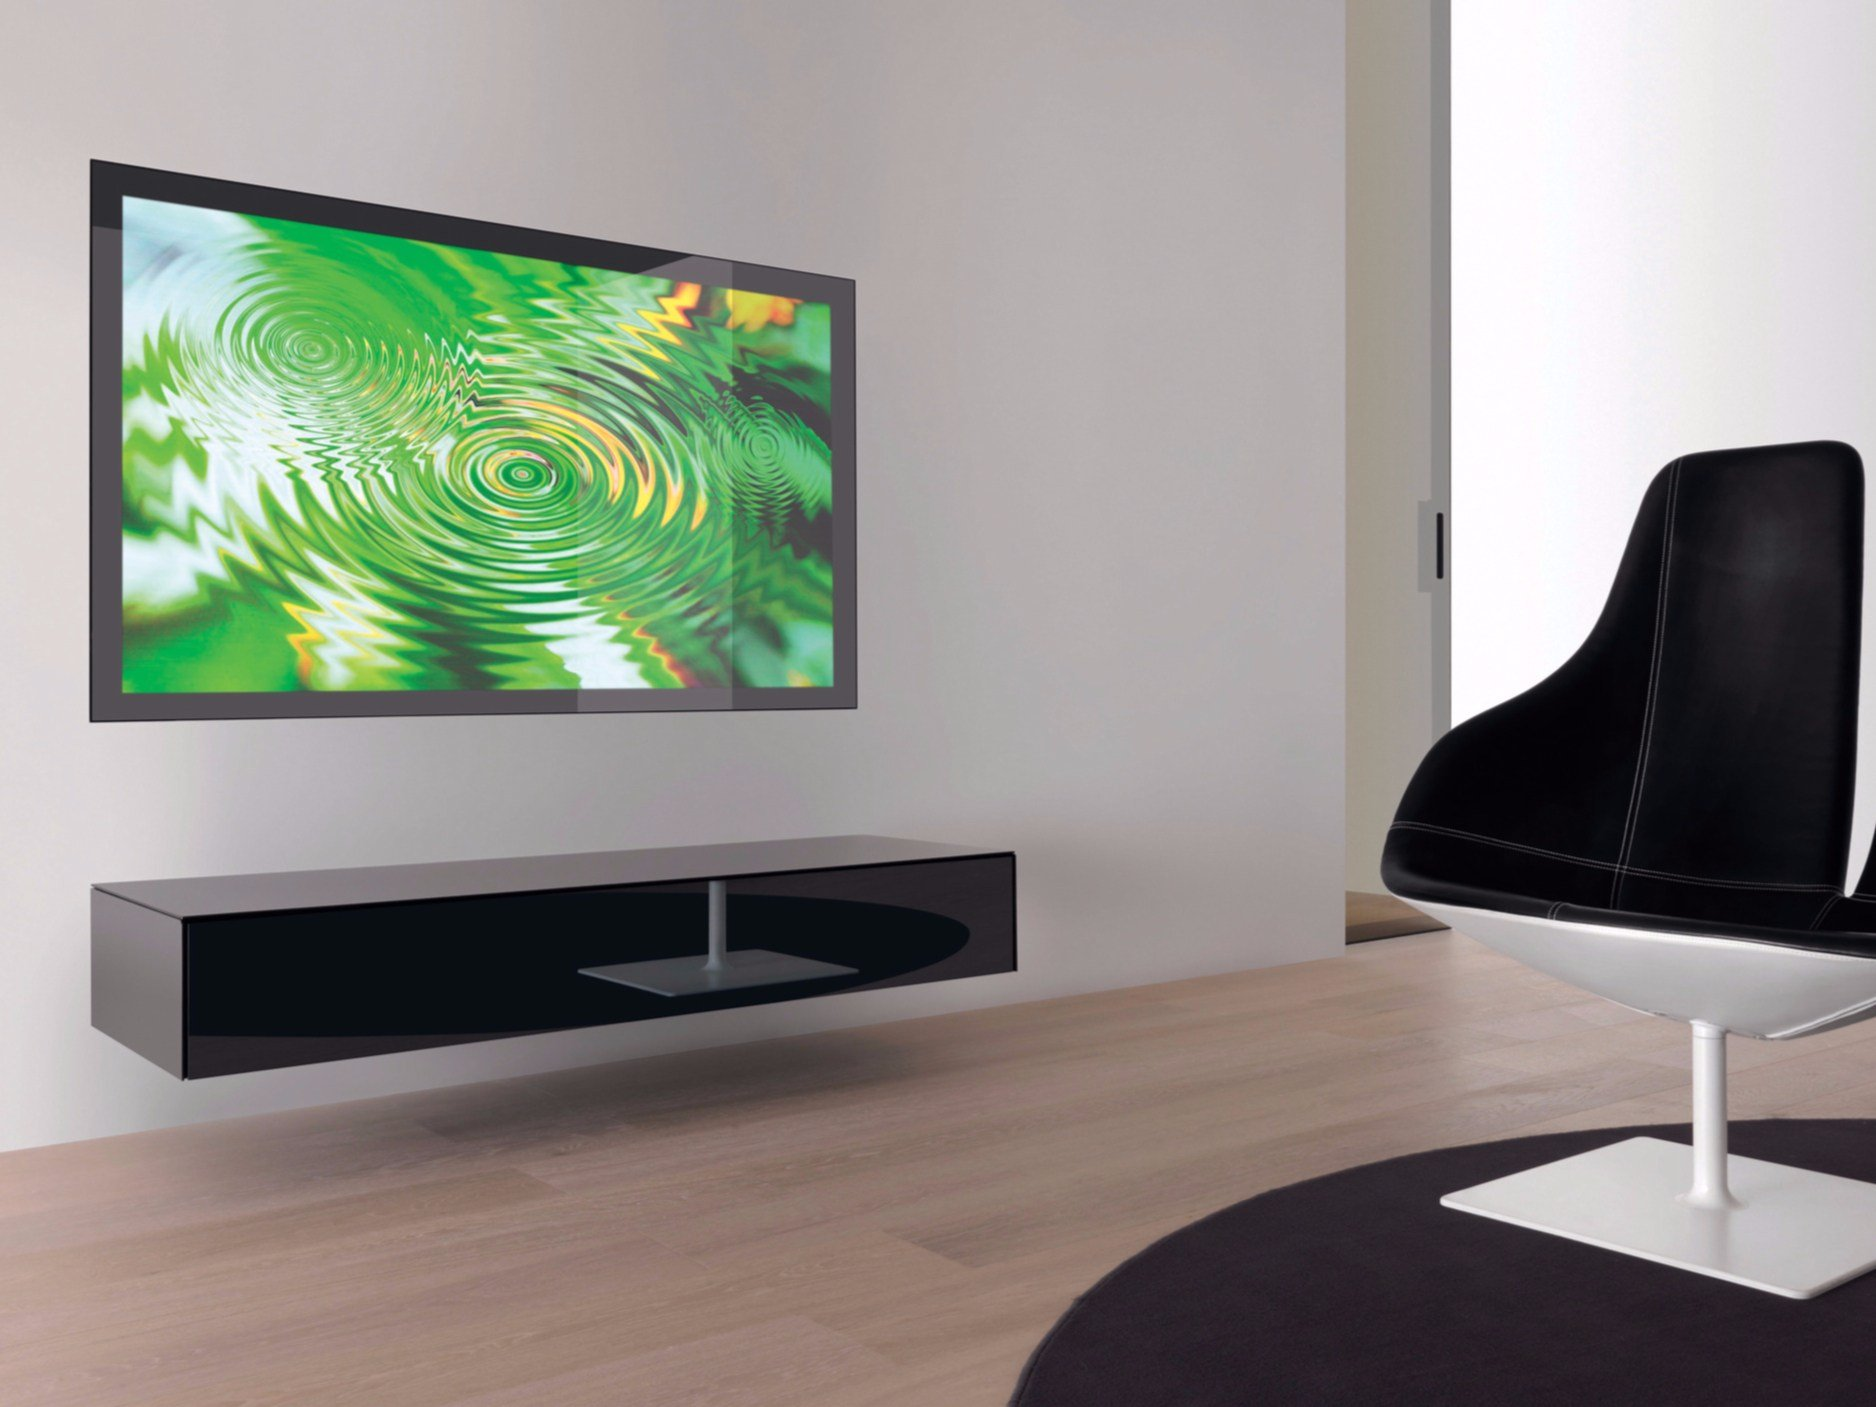 wall mounted tv cabinet with built in speakers zero zero by res design gianluca santambrogio. Black Bedroom Furniture Sets. Home Design Ideas